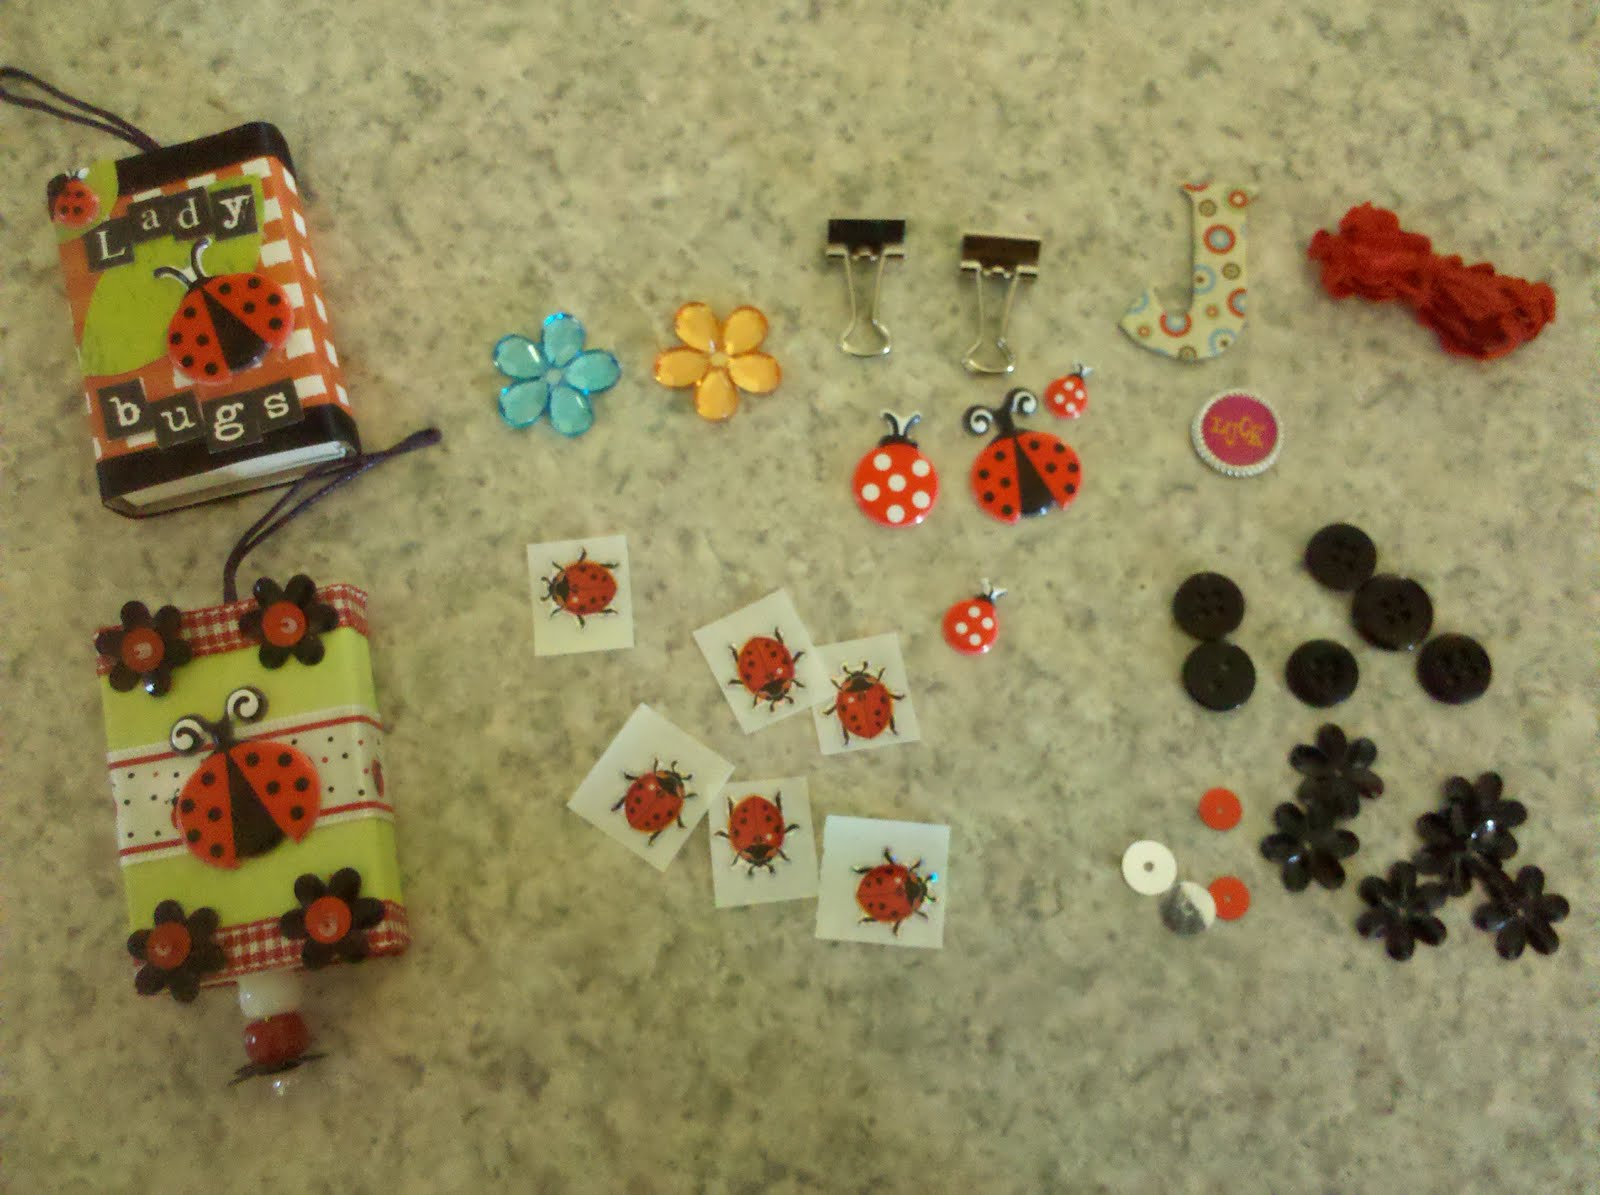 Ladybug ornaments - Here S A Close Up Of The Matchbox Ornaments Each Of The Ladybug Ornaments Was Filled With Loot Look At All Of These Great Embellishments For My Future